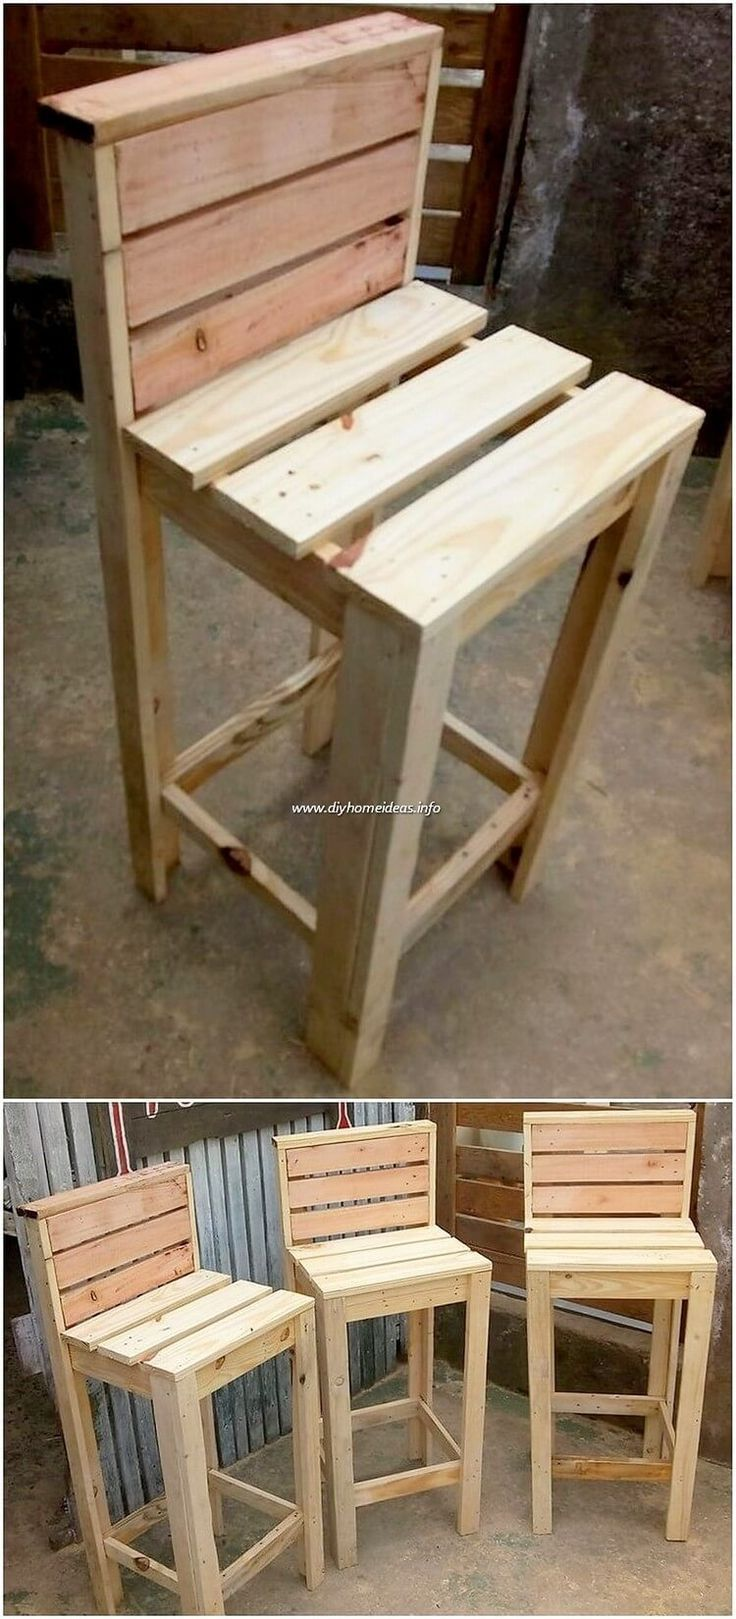 Wood pallets 842032461564150251 -  Cheap And Easy DIY Wood Pallet Projects  #cheap #pallet #projects Source by pallet11